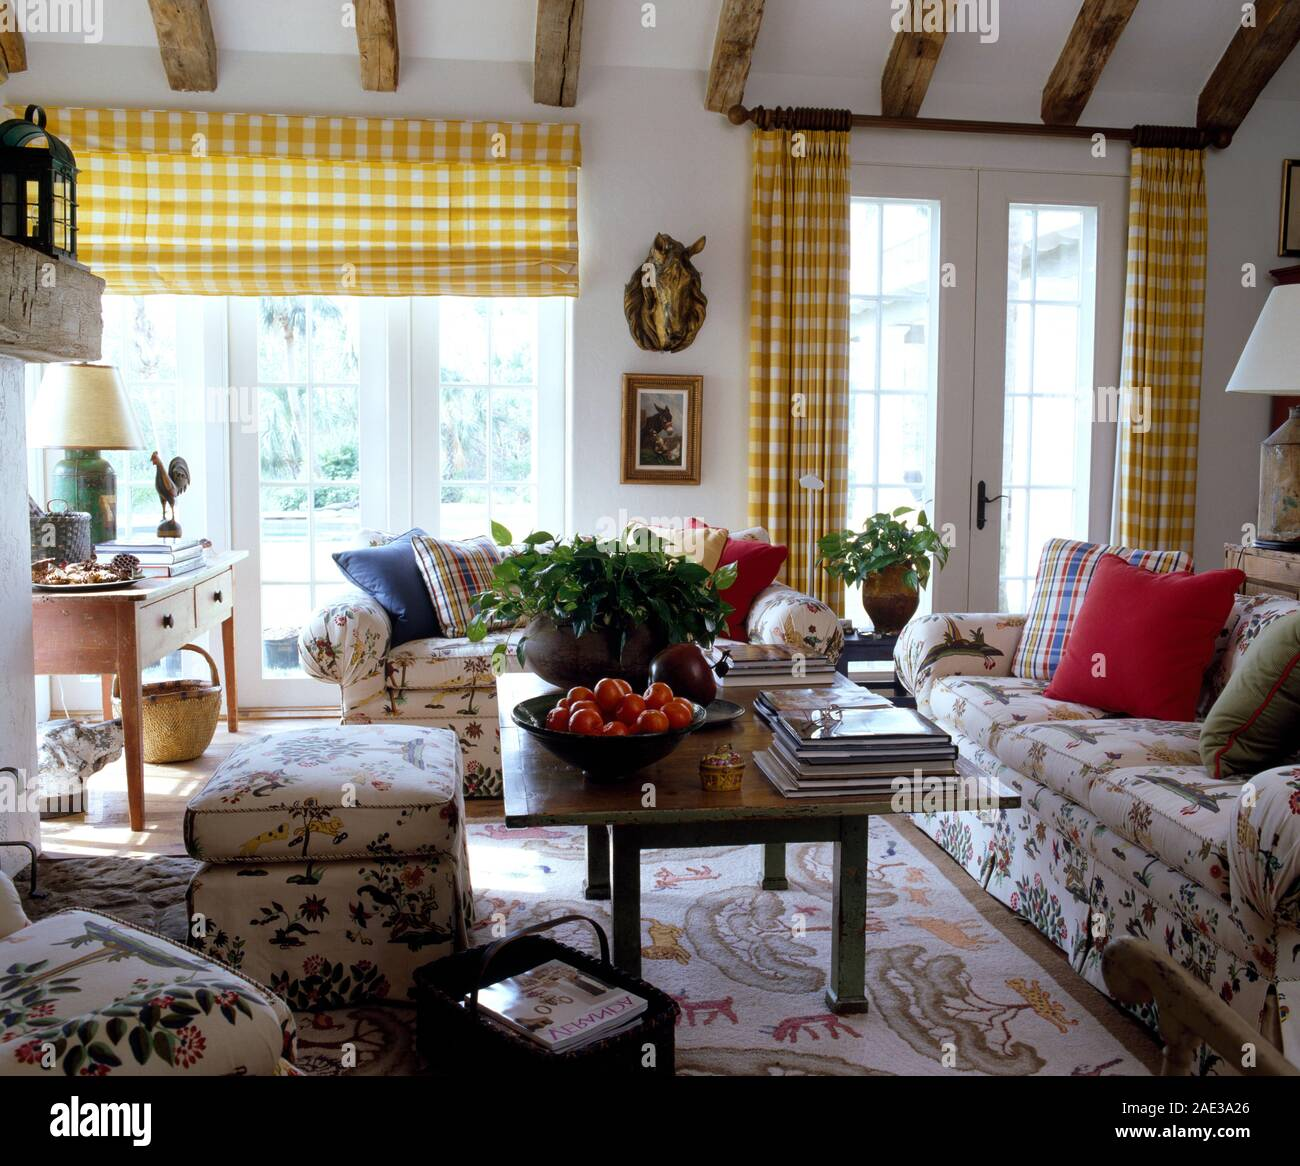 Yellow White Checked Blind And Curtains On French Windows In A Sunny Country Living Room With Floral Sofas And Ottoman Stock Photo Alamy